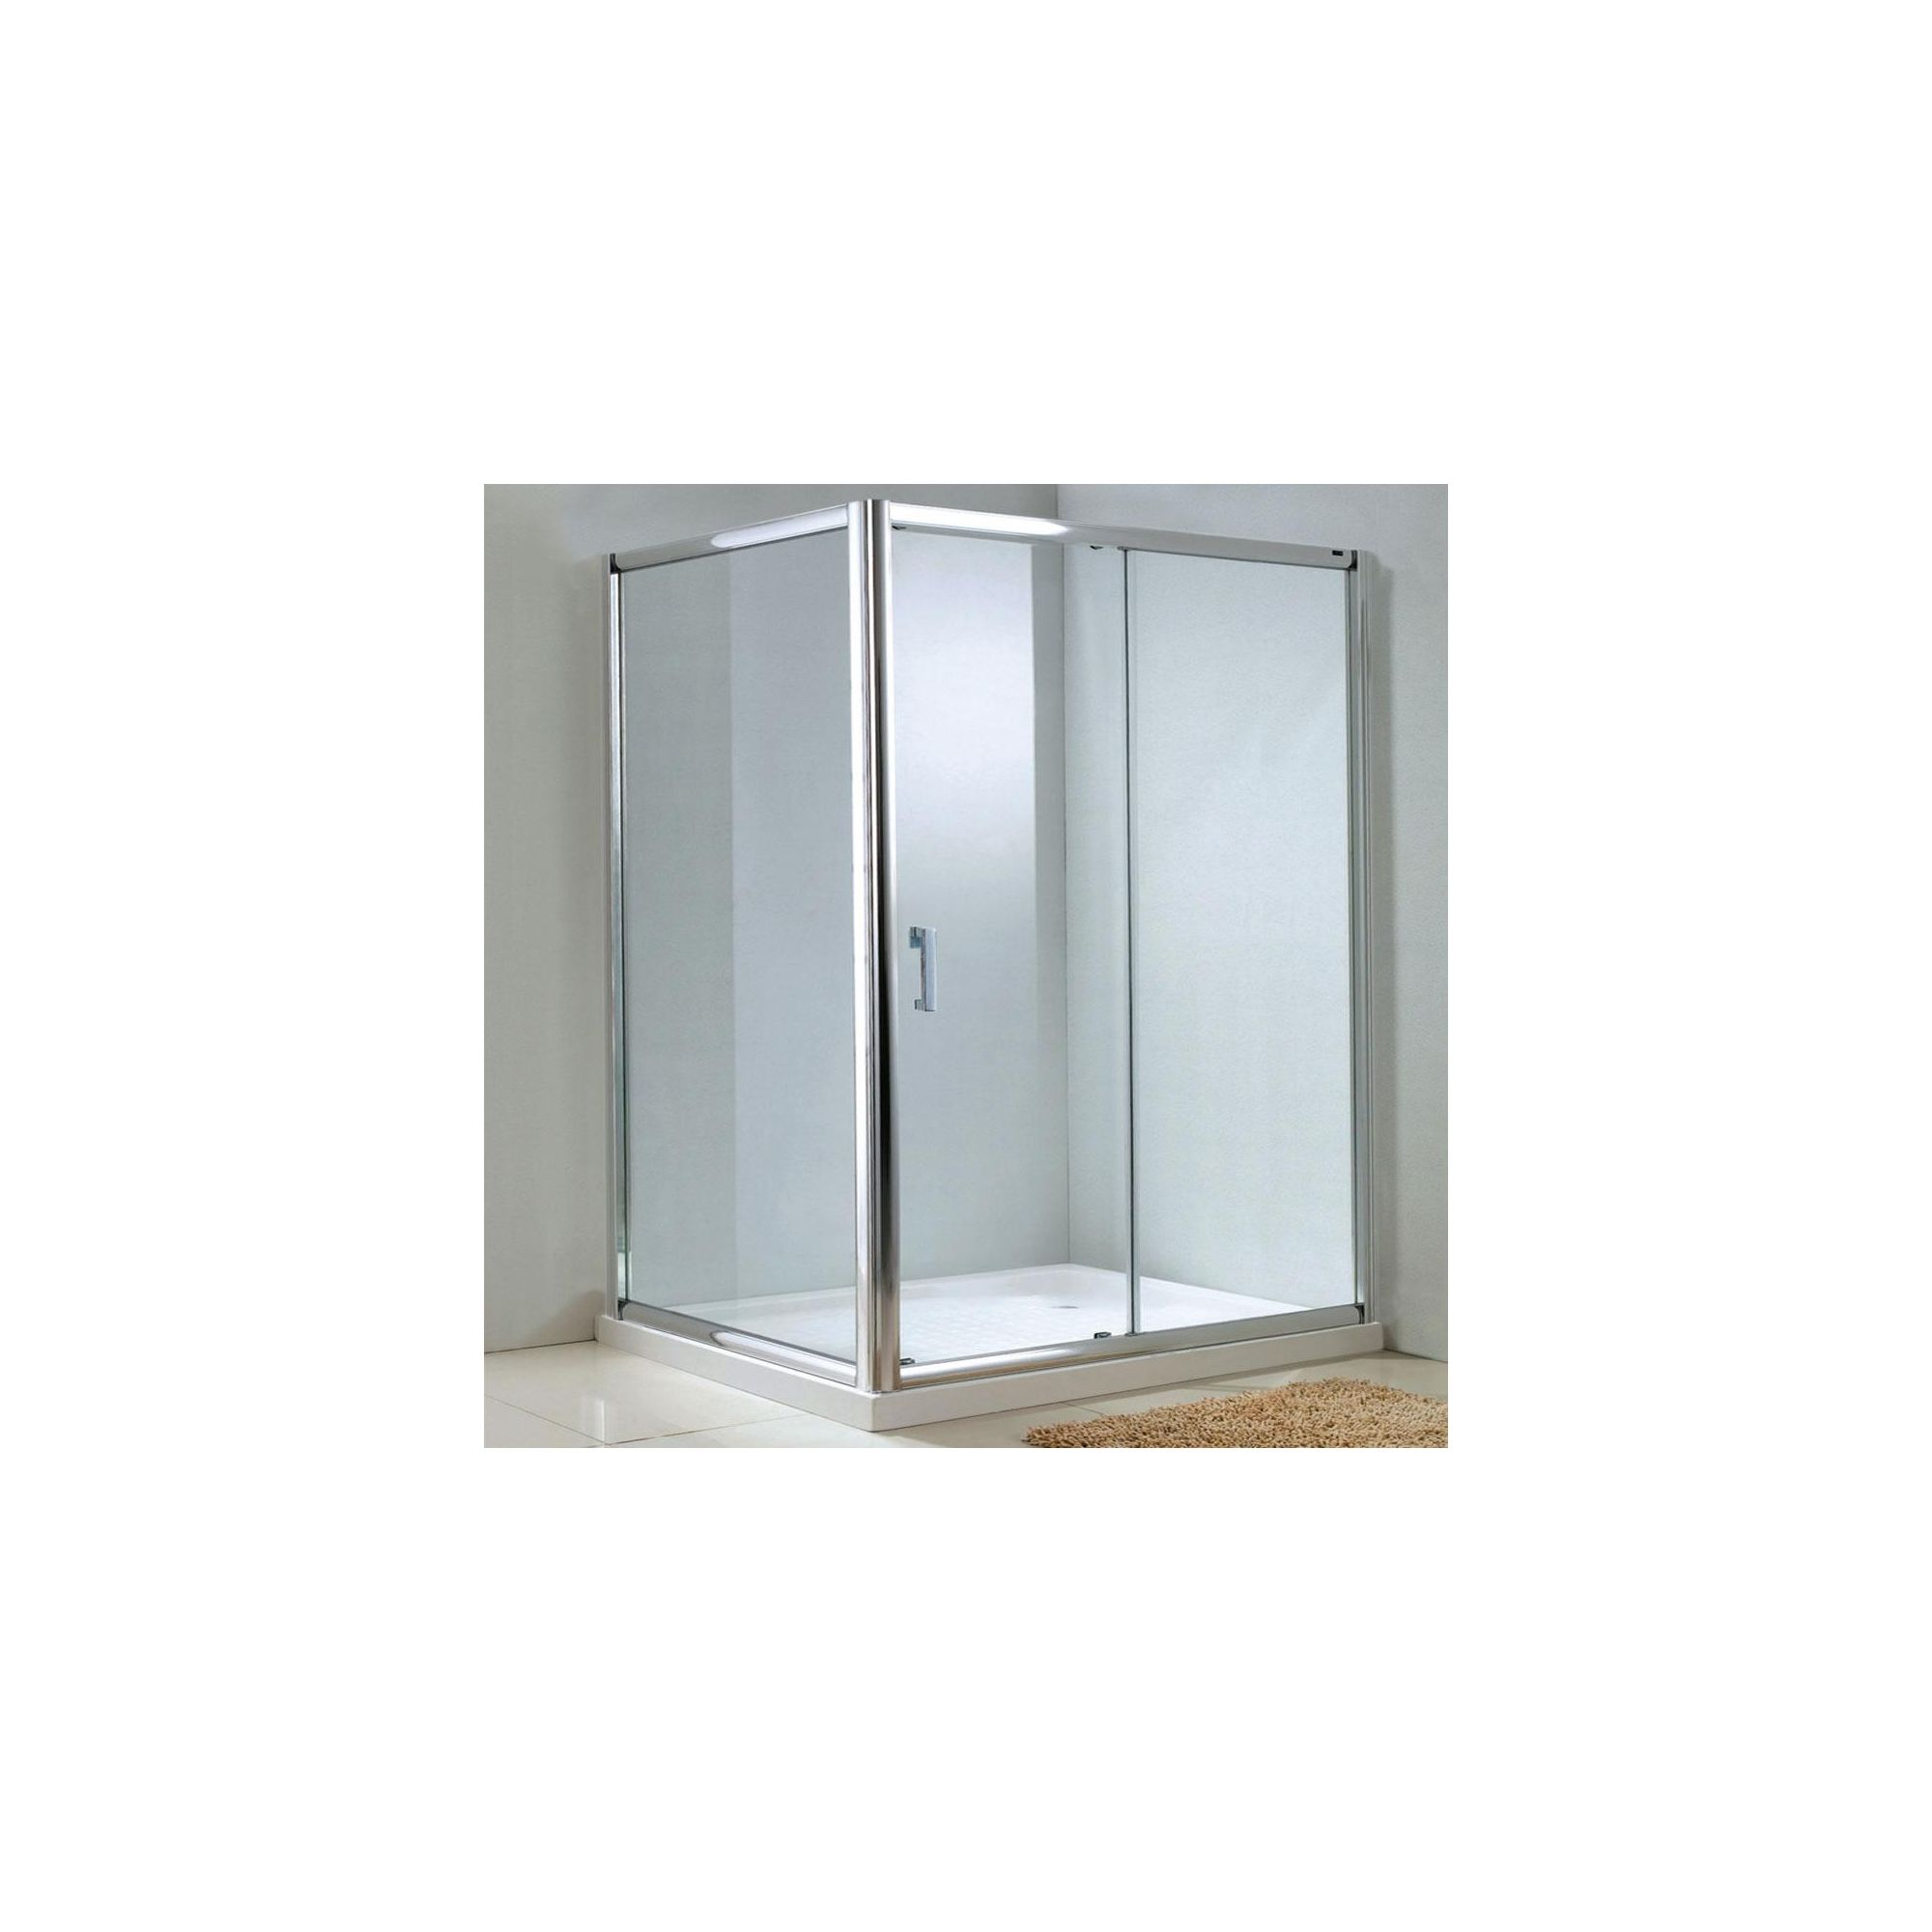 Duchy Style Single Sliding Door Shower Enclosure, 1100mm x 800mm, 6mm Glass, Low Profile Tray at Tesco Direct